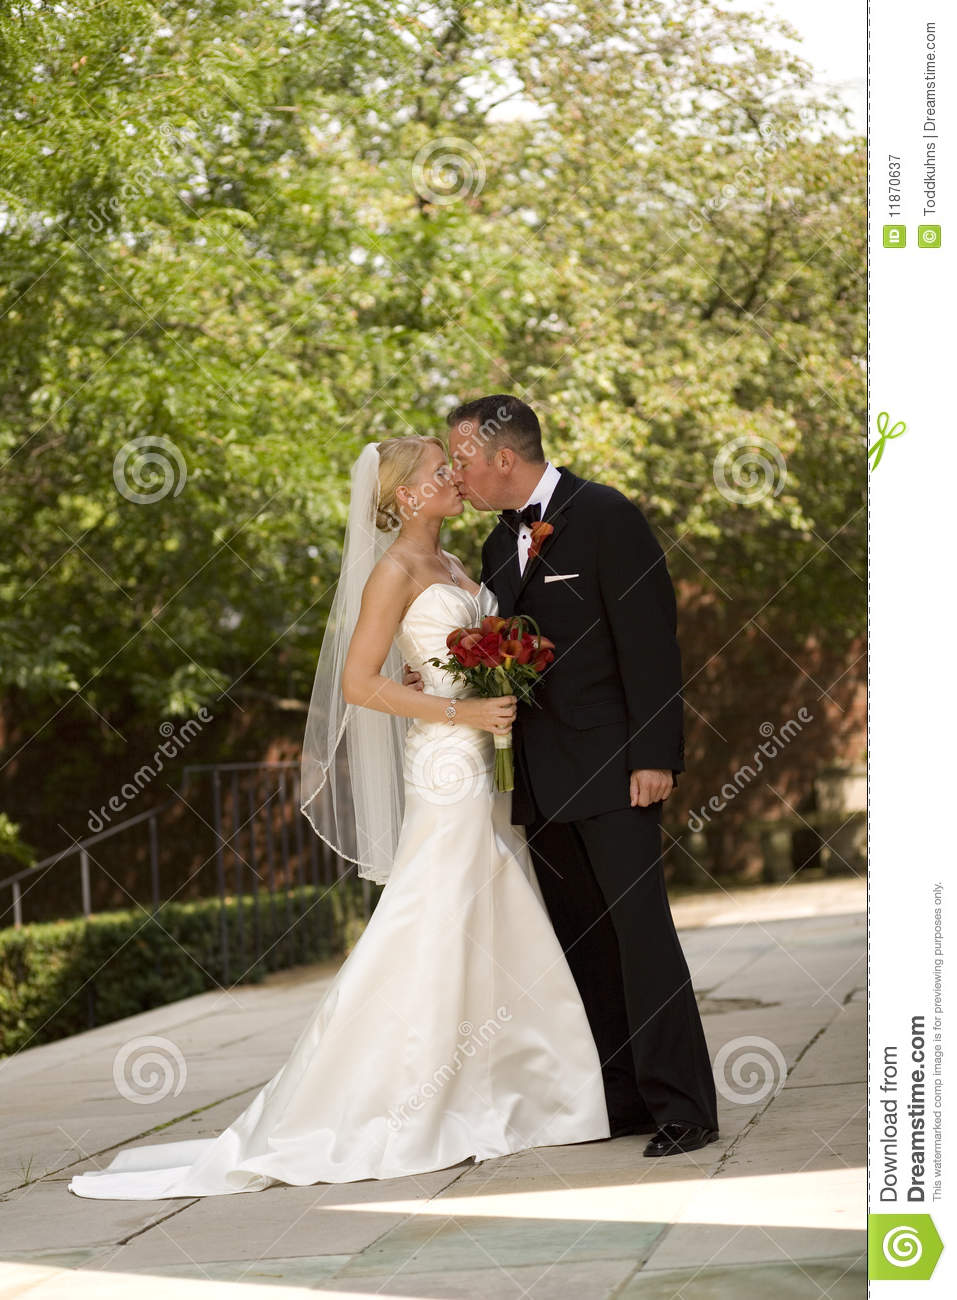 Bride and Groom Kissing stock image Image